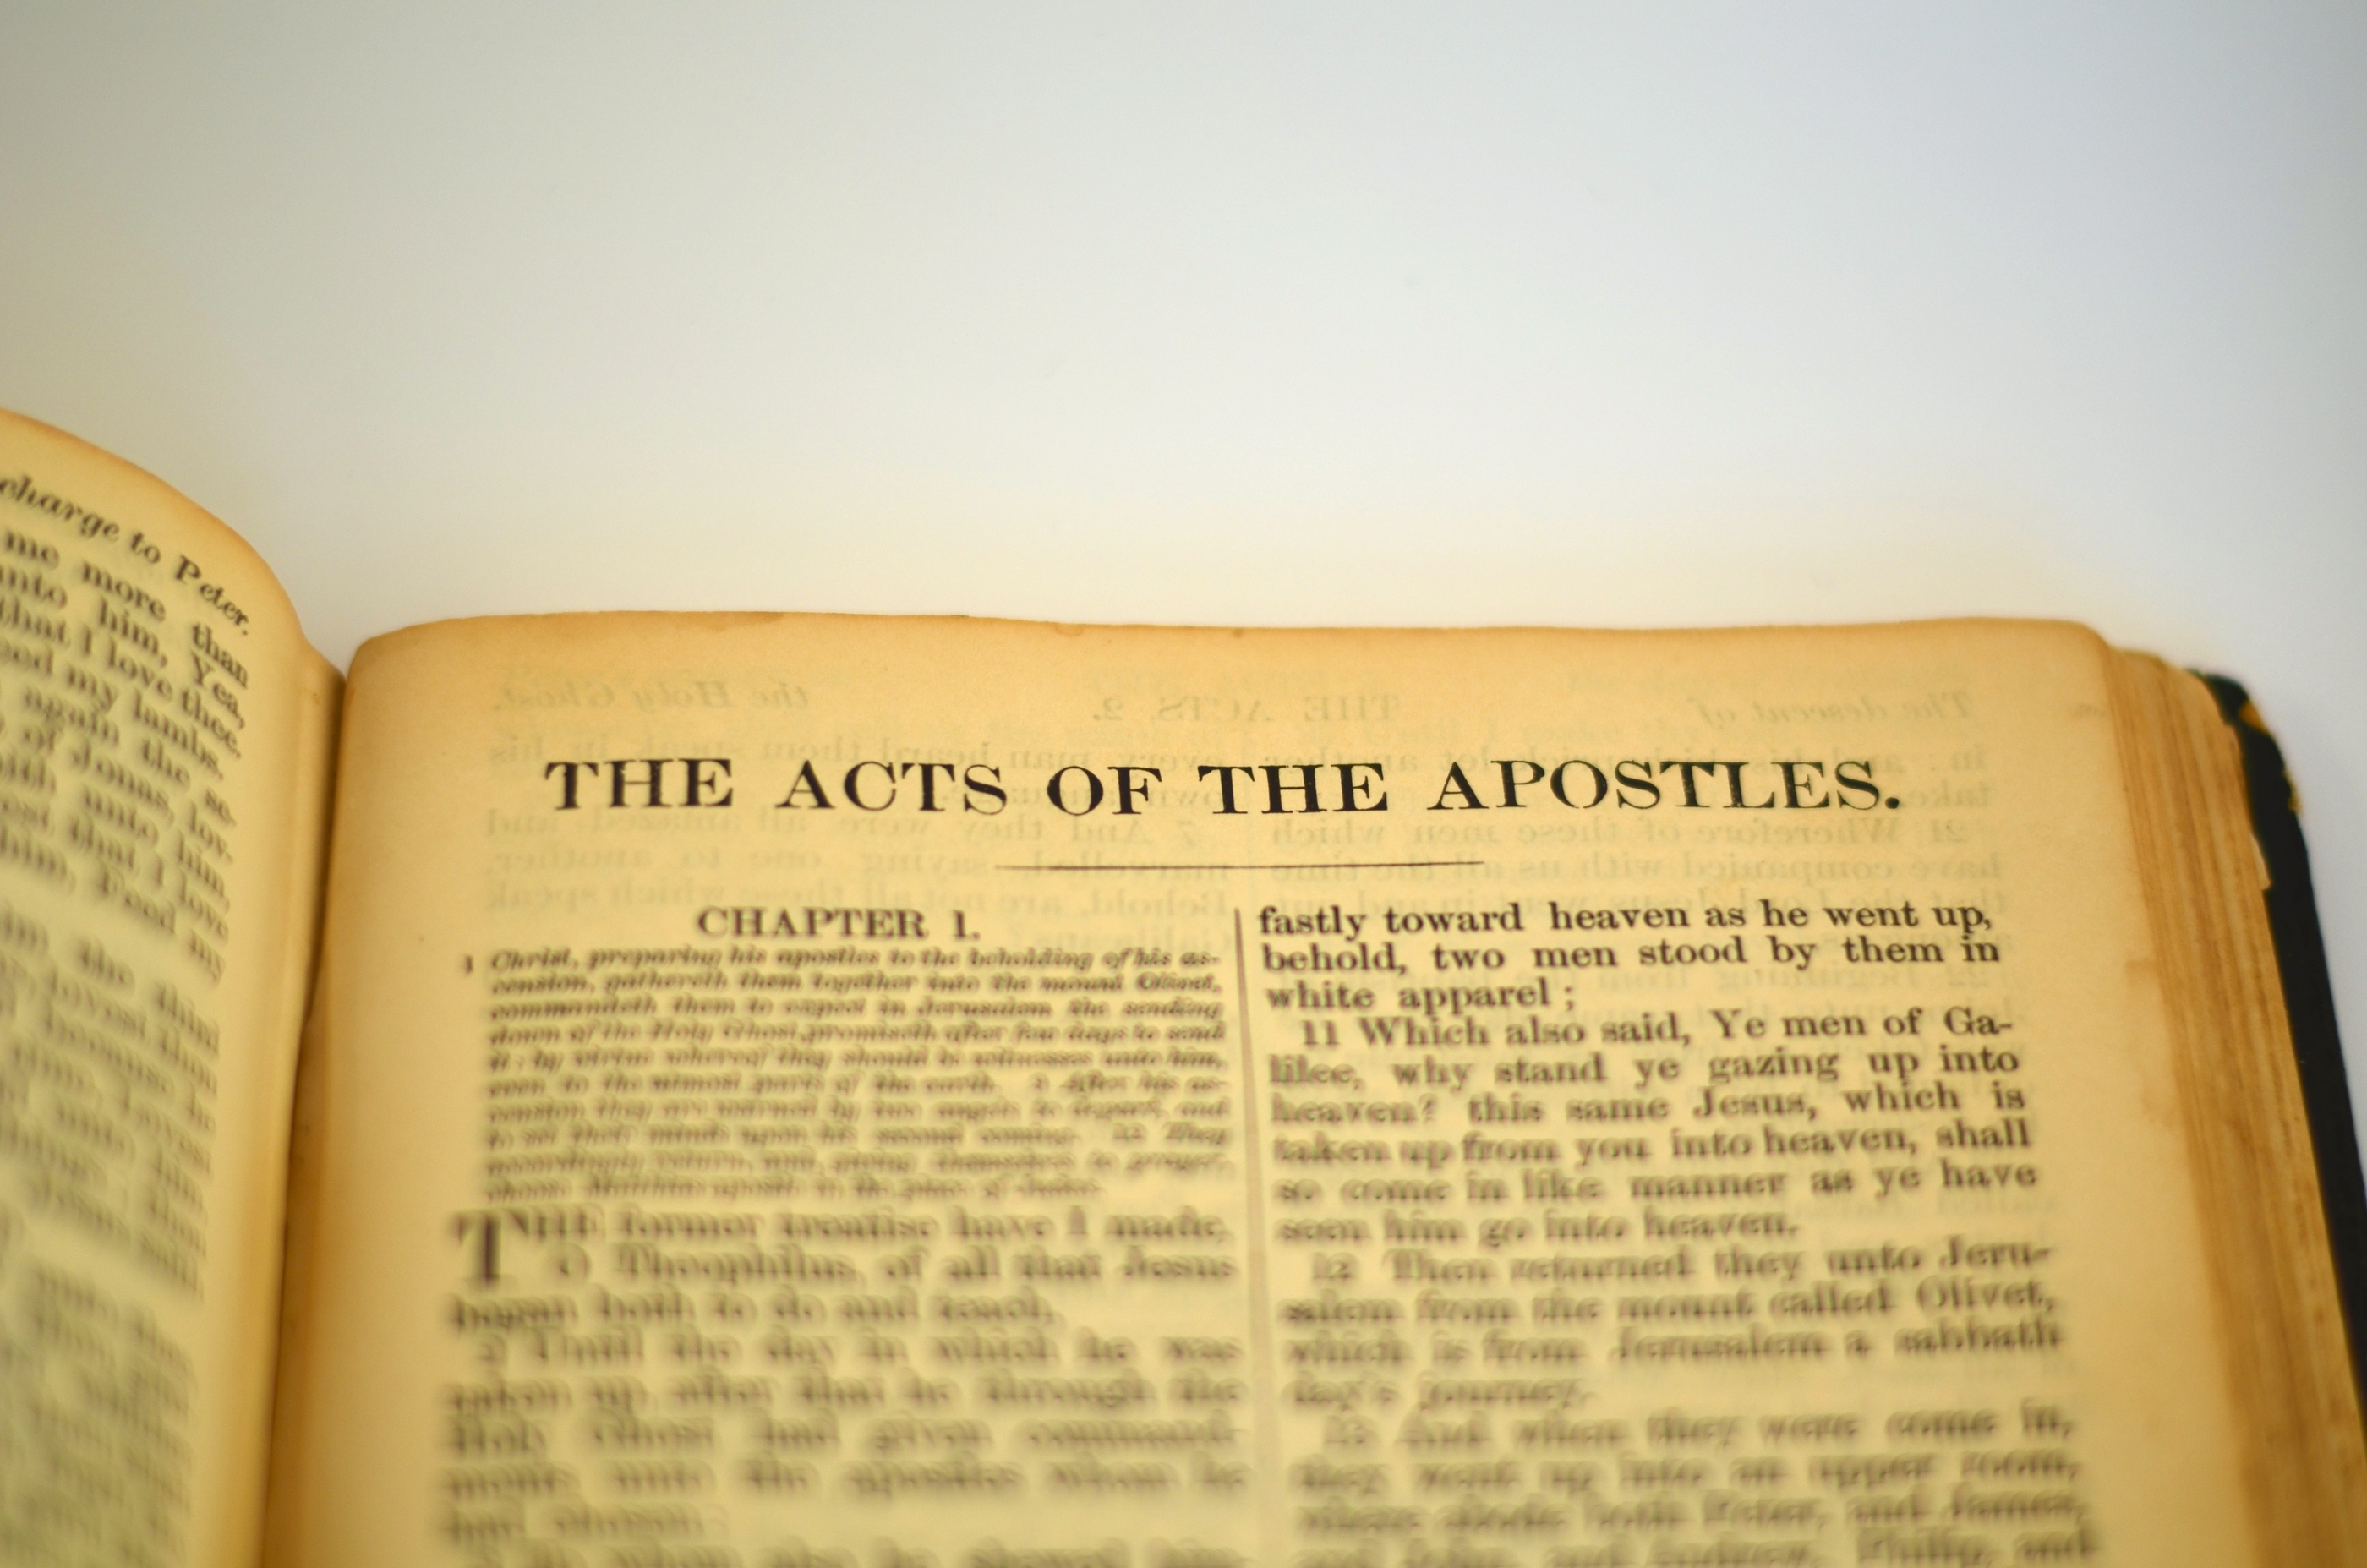 Acts dating evangelists the between and the apologists pictures